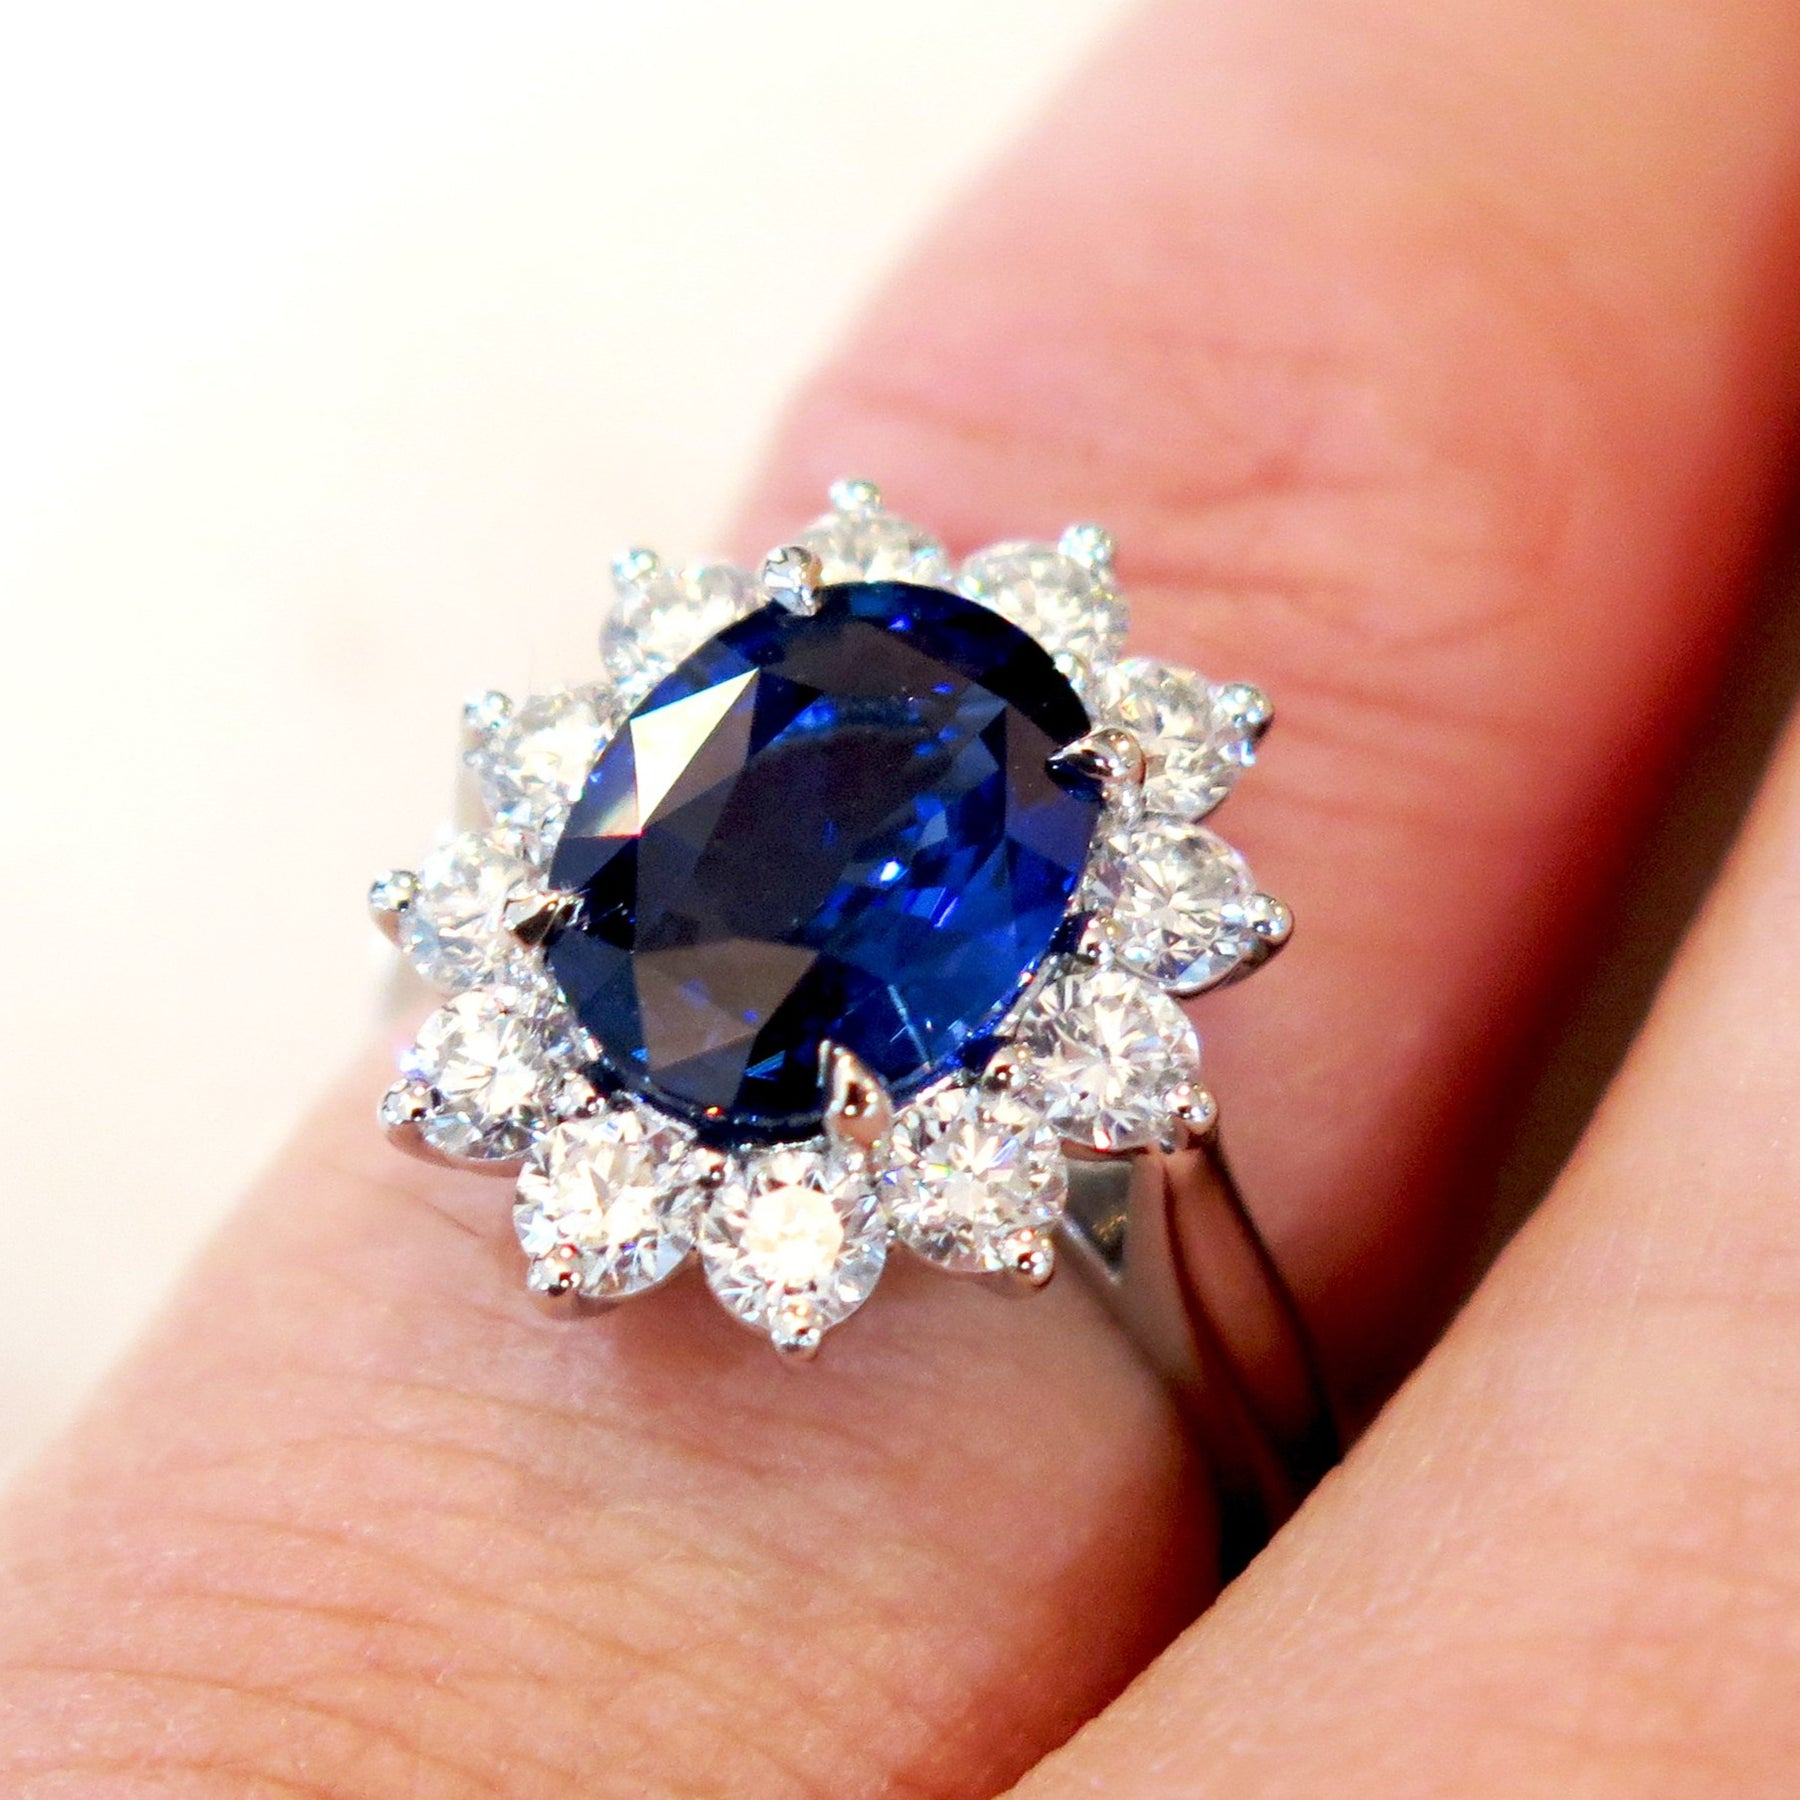 london 3 carat royal blue sapphire halo engagement ring unique engagement rings nyc custom jewelry by dana walden bridal london 3ct oval blue sapphire halo engagement ring